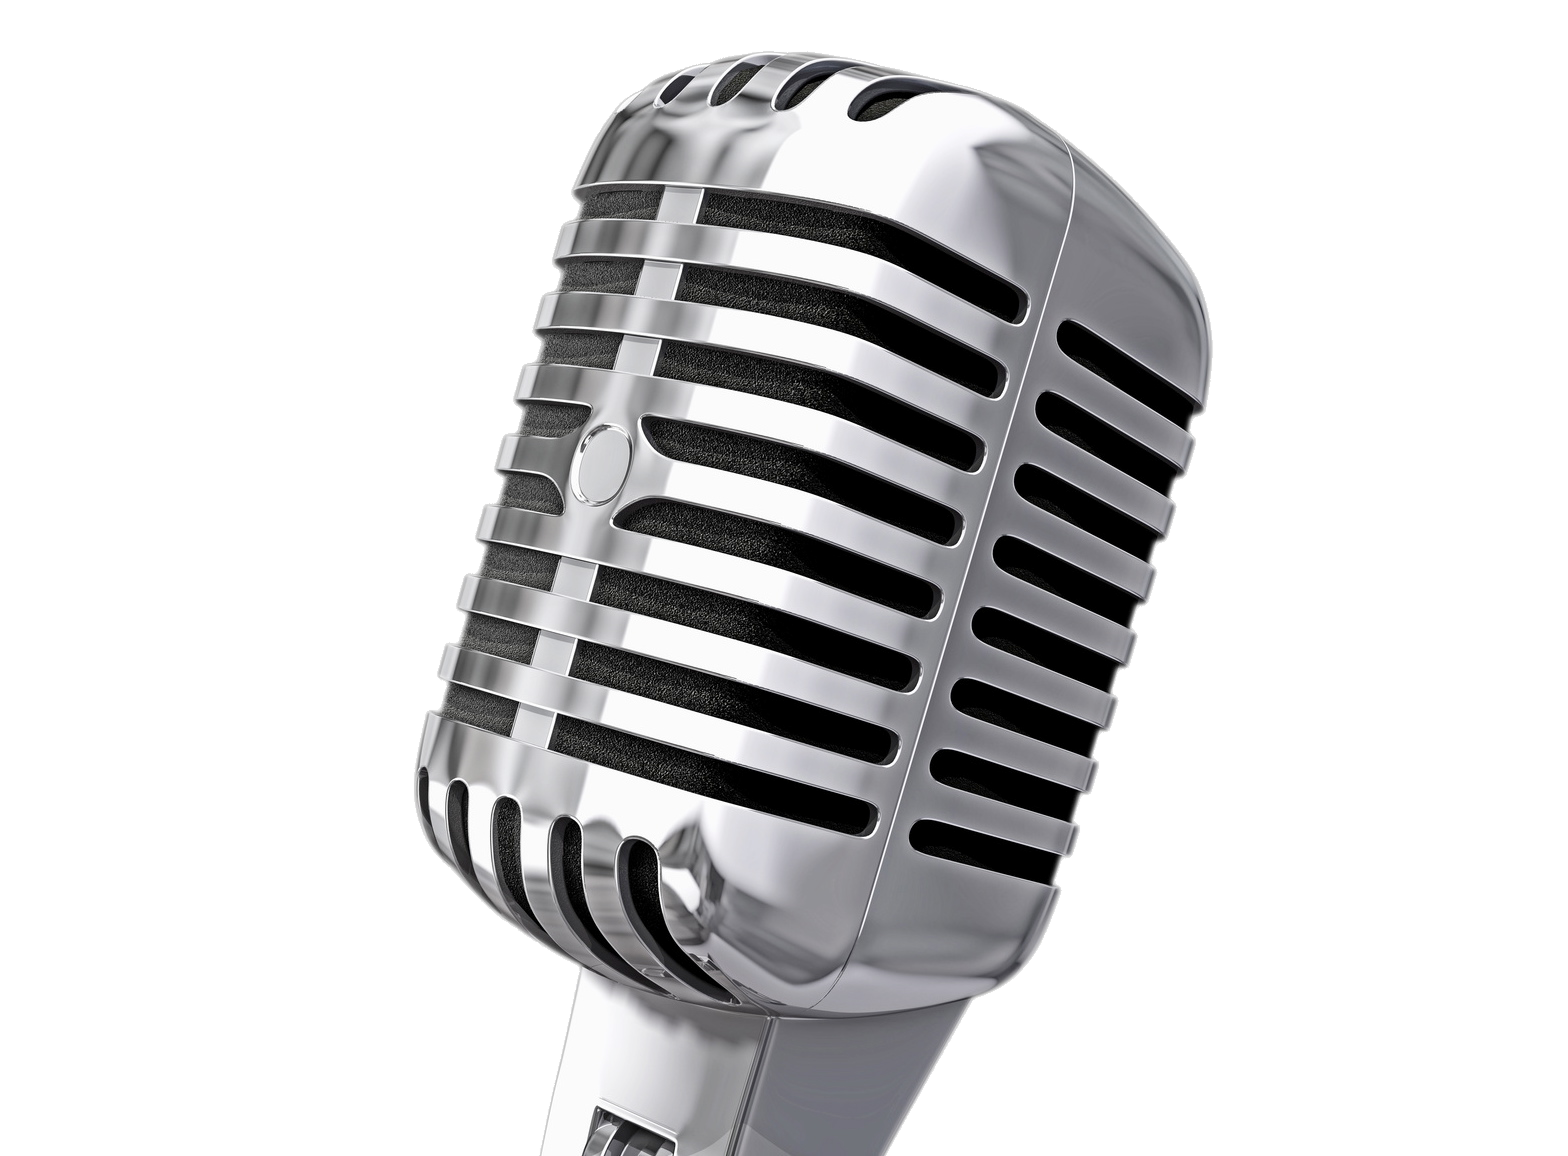 Microphone Png image #19981